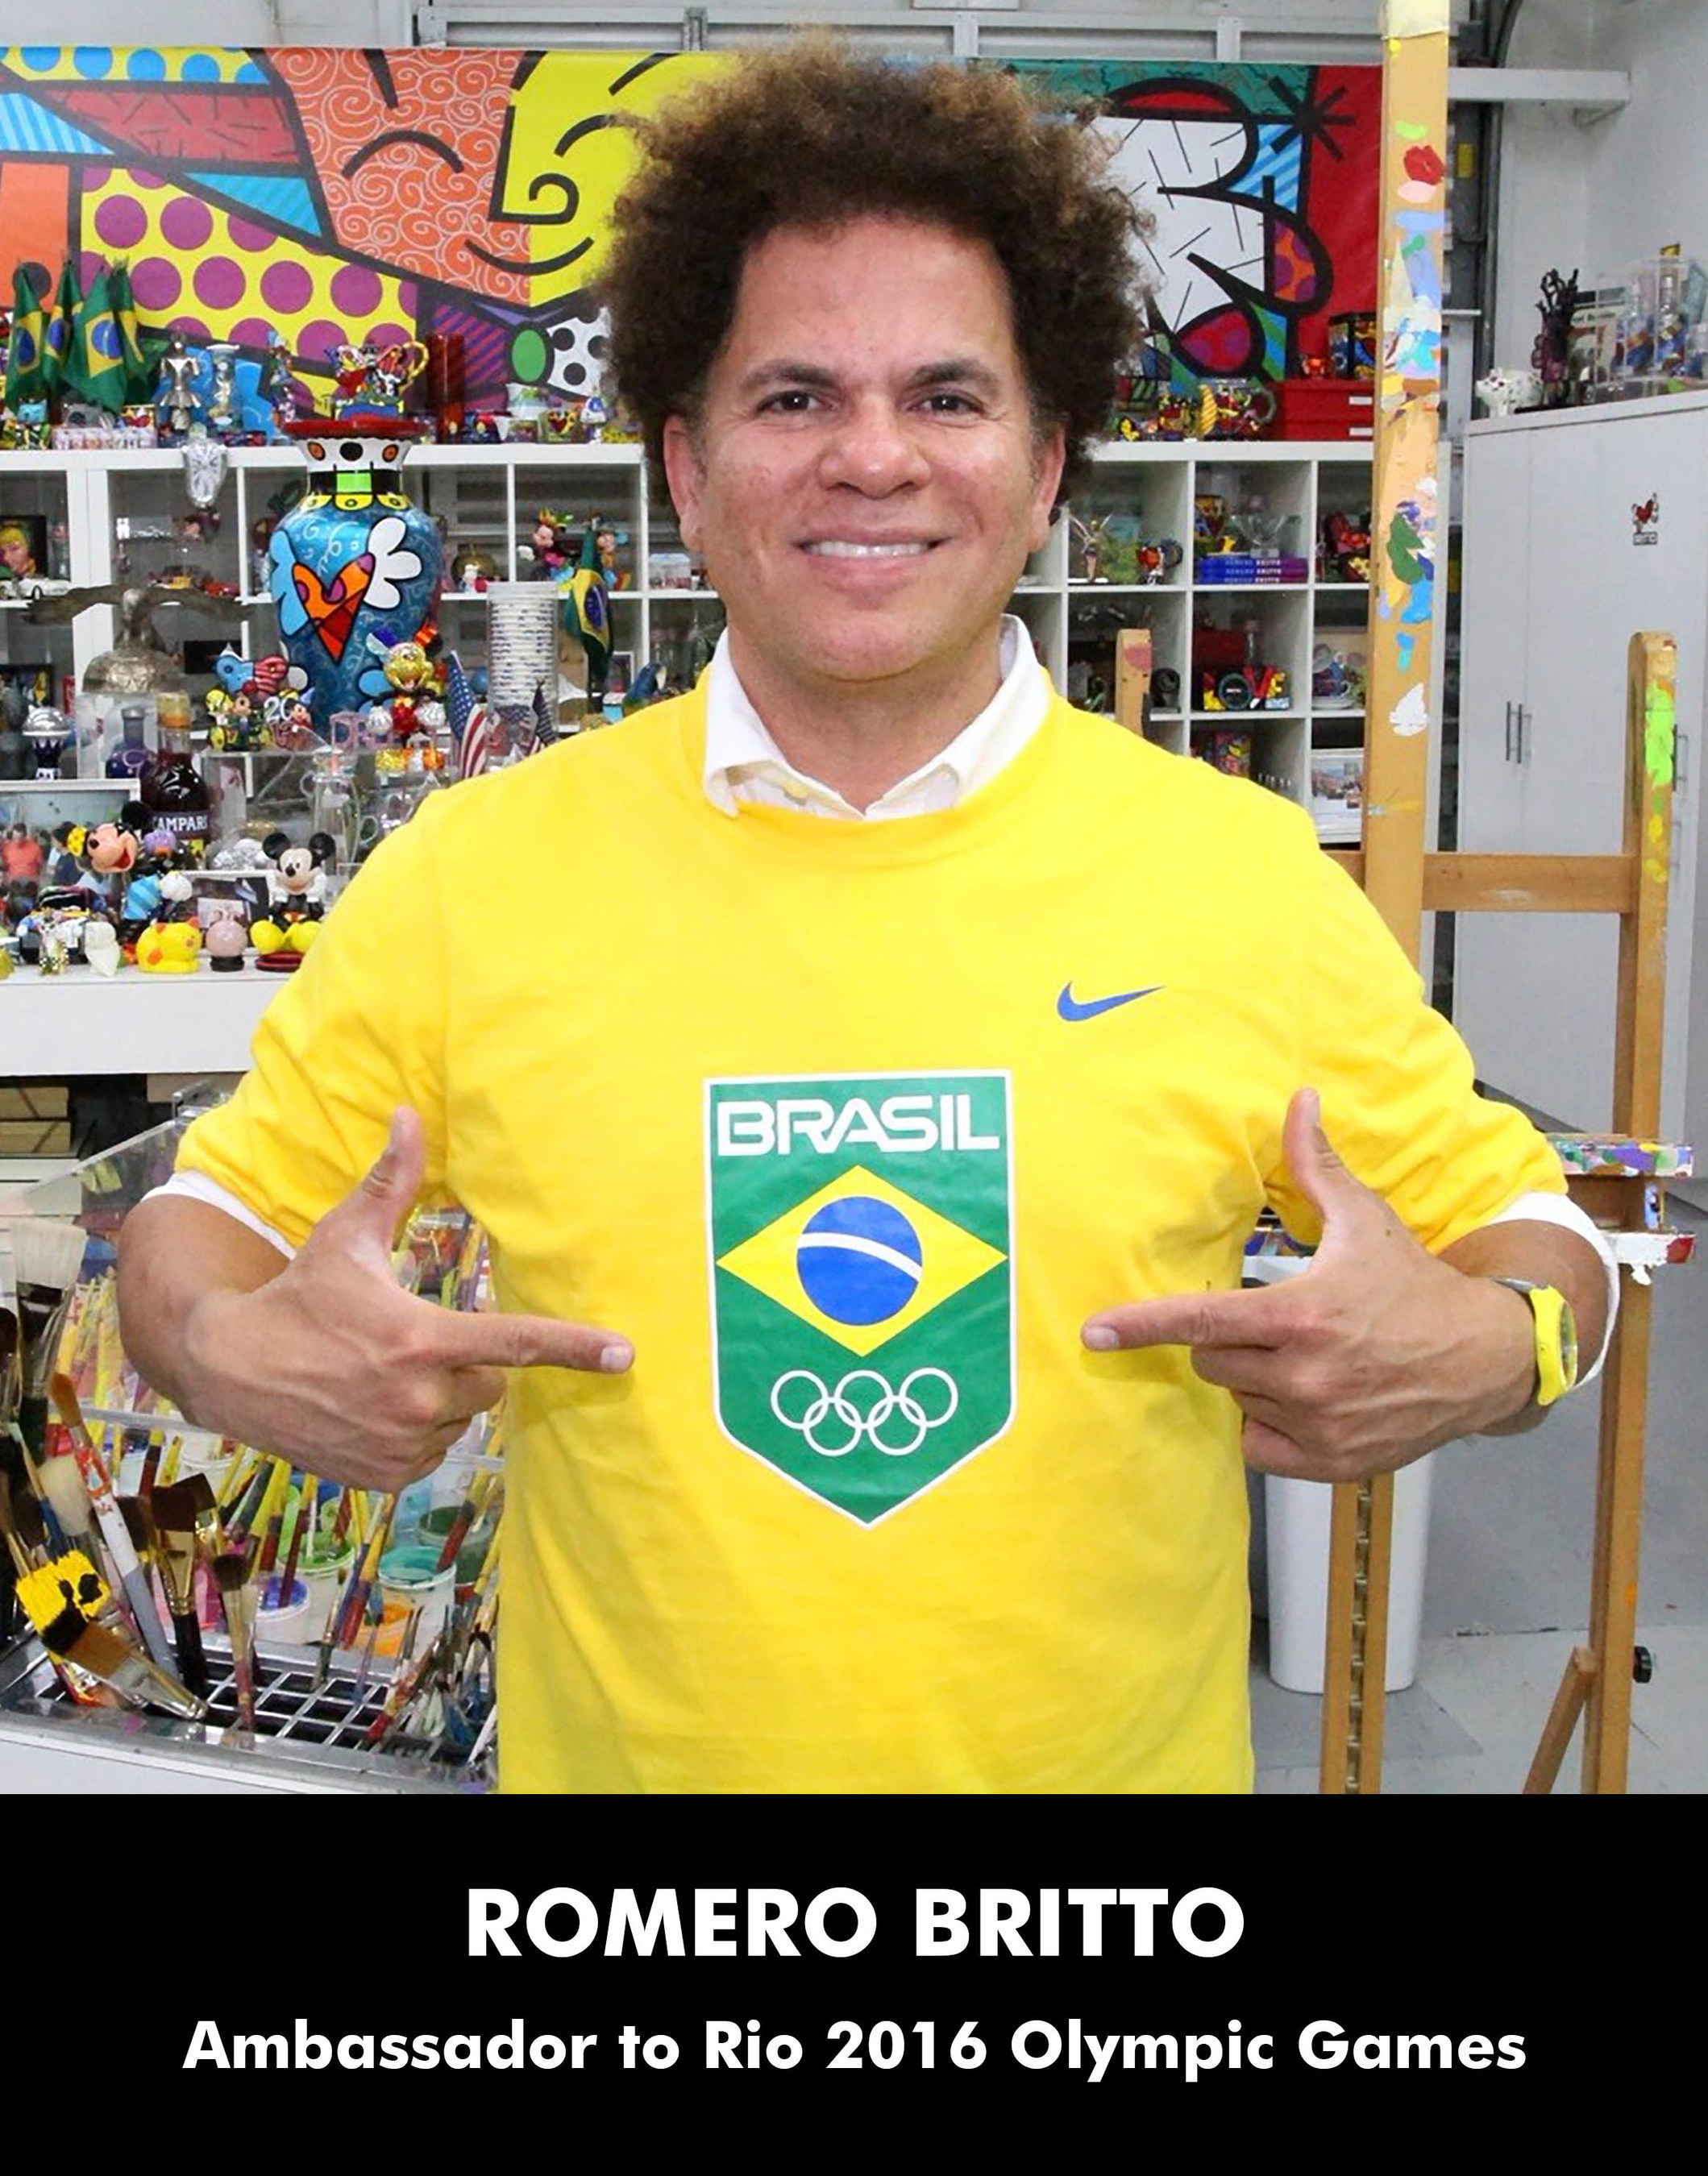 Iconic pop artist, Romero Britto, wears the seal of the Rio Olympics and flag of his native Brazil as Global Ambassador 2016 games.